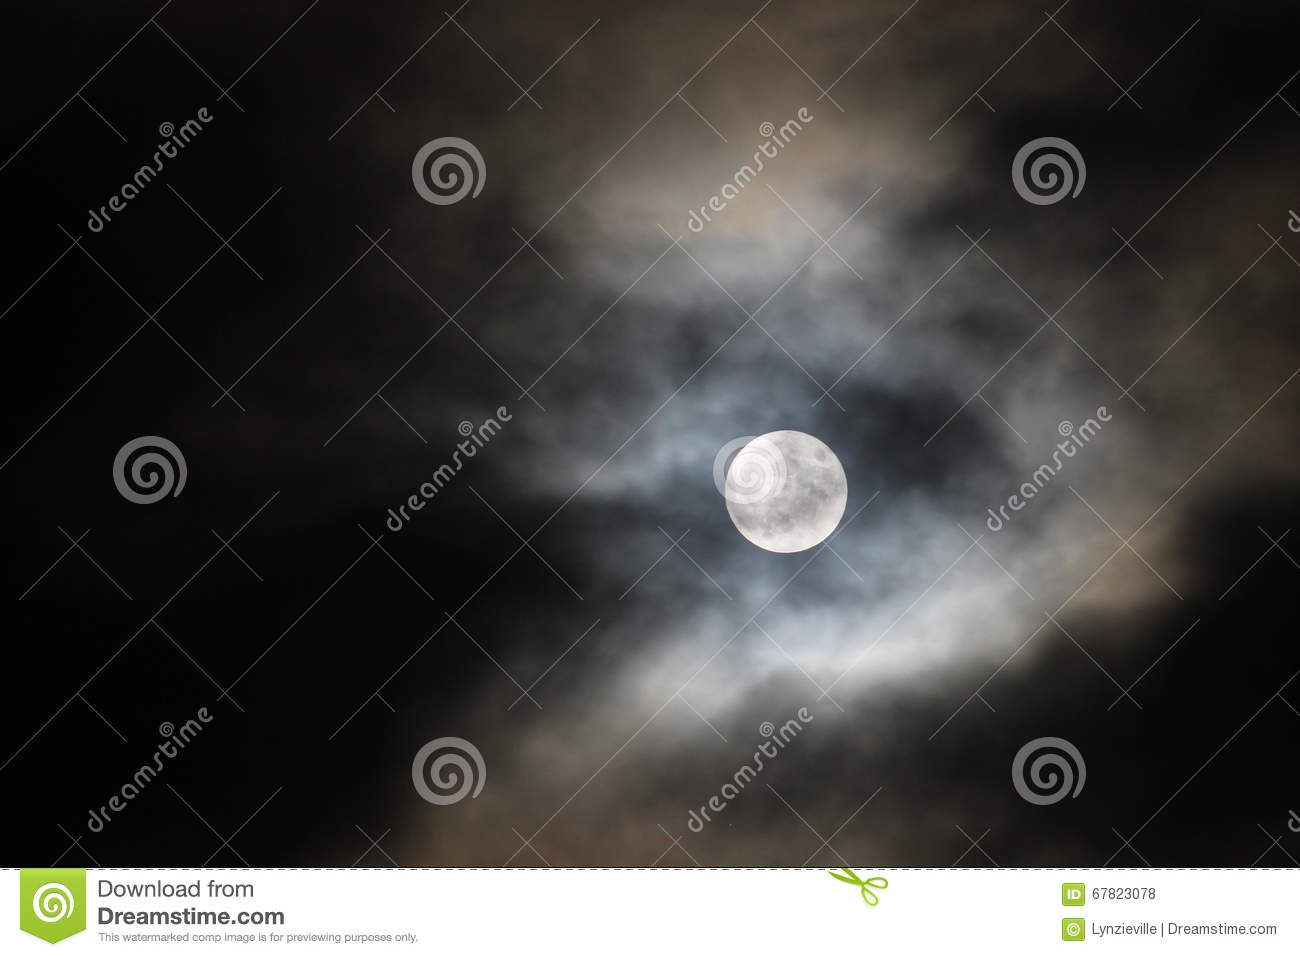 Full moon with dark clouds passing by.